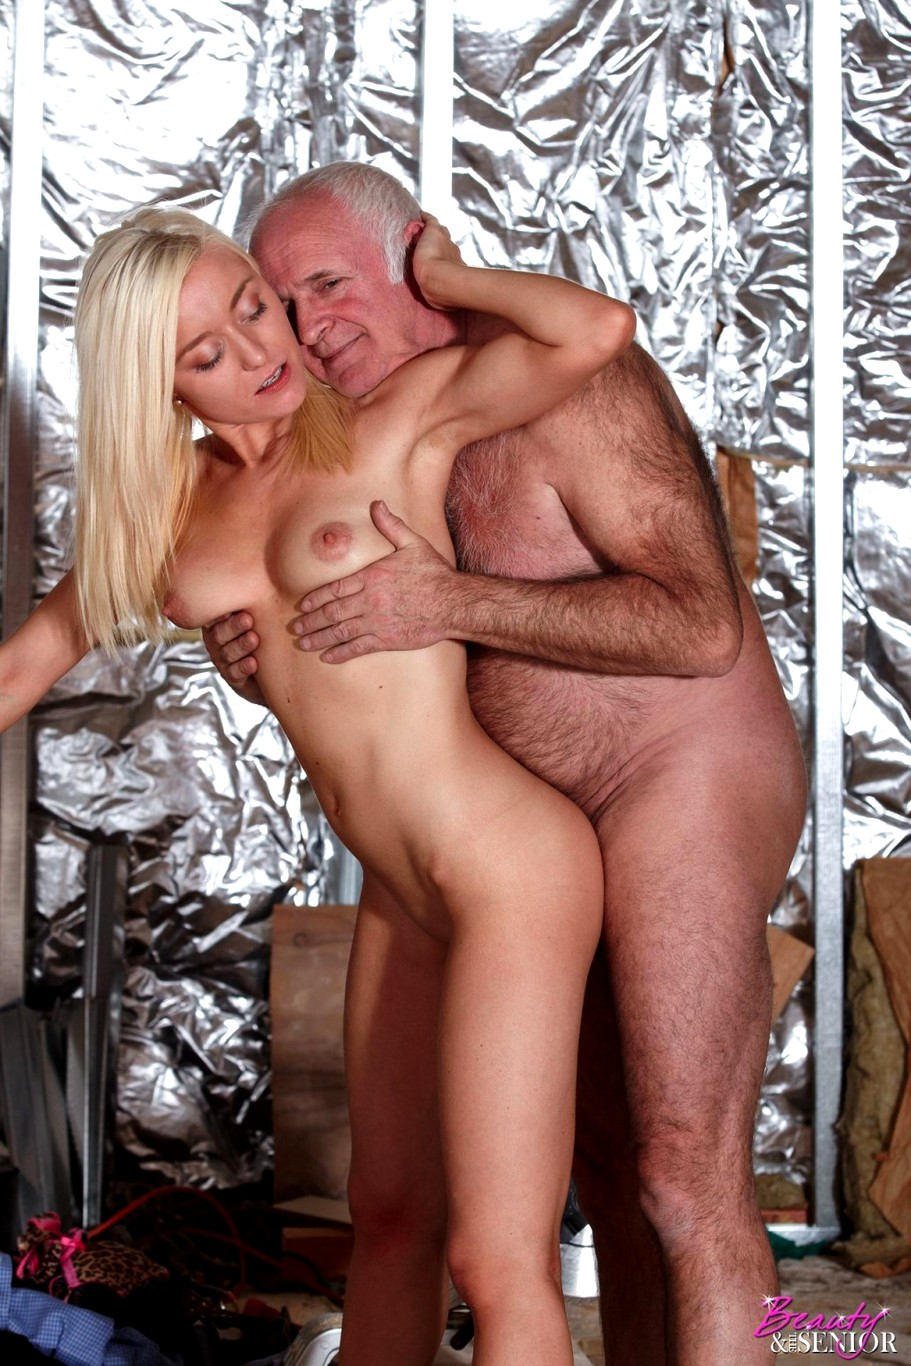 Beauty And The Senior Hd Porn Pics On Xcafe